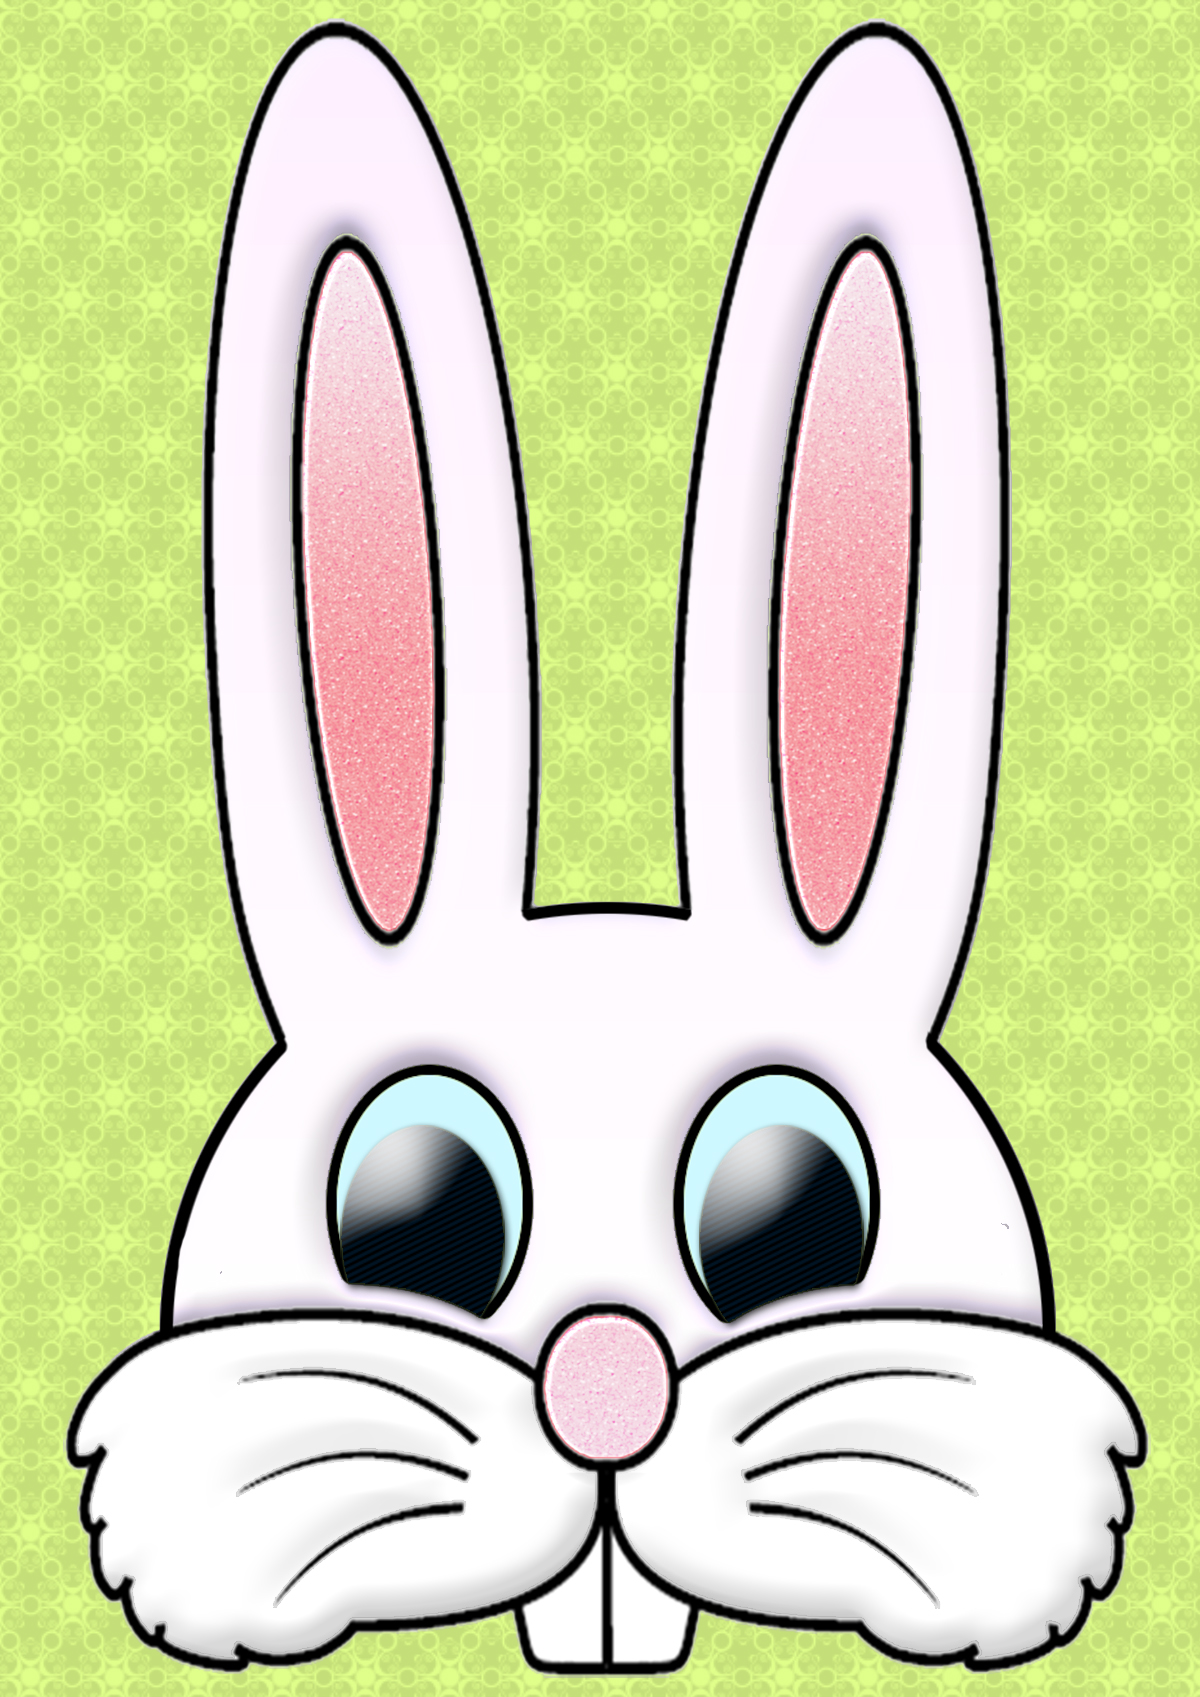 1200x1697 Easter Bunny Face Cut Out Mask A4 Free Wallpaper